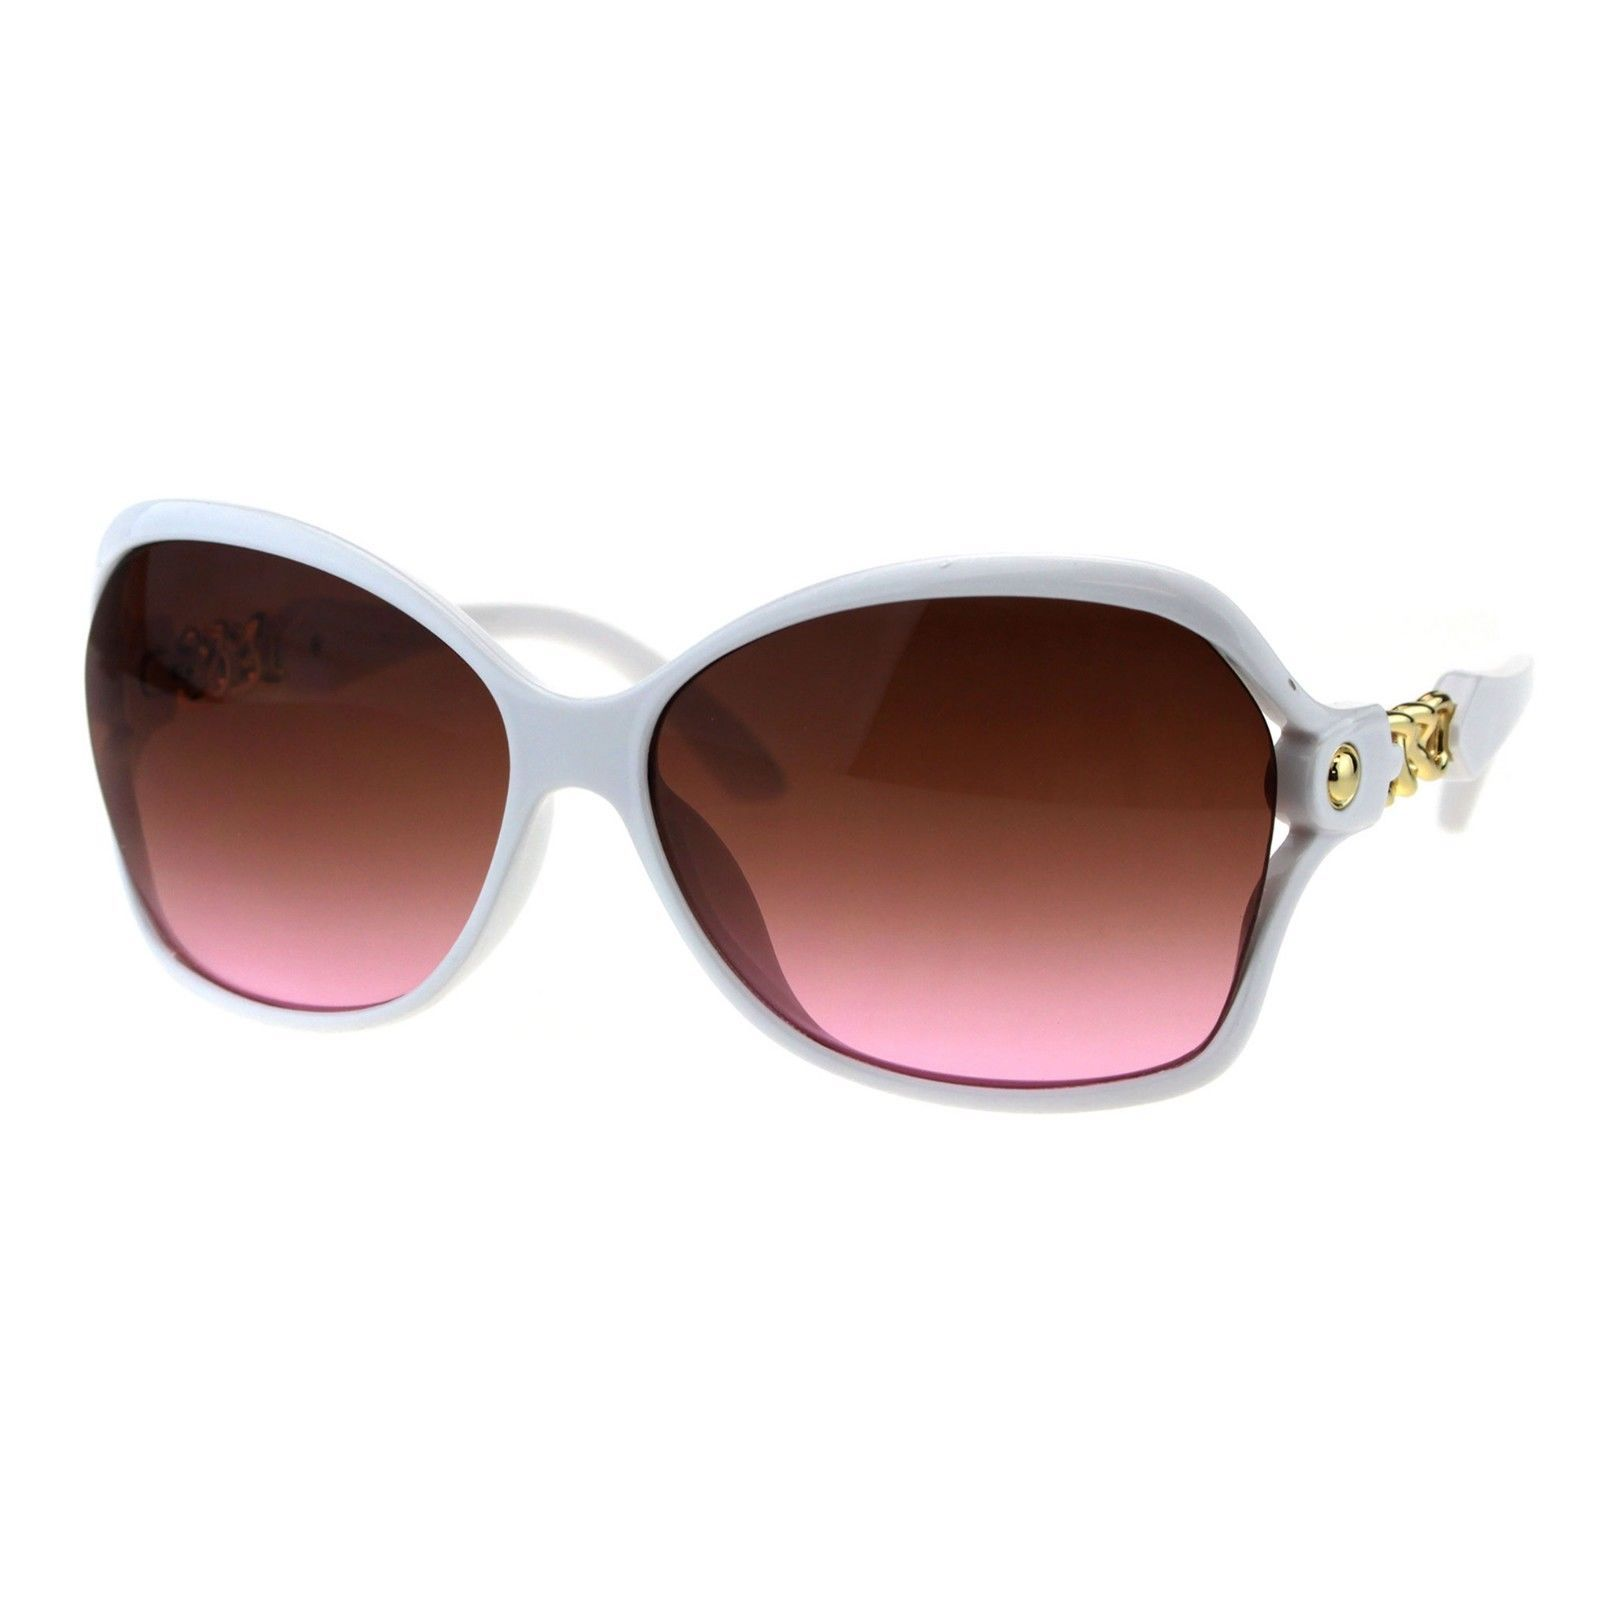 Womens Designer Style Sunglasses Butterfly Frame Gold Chain Temple